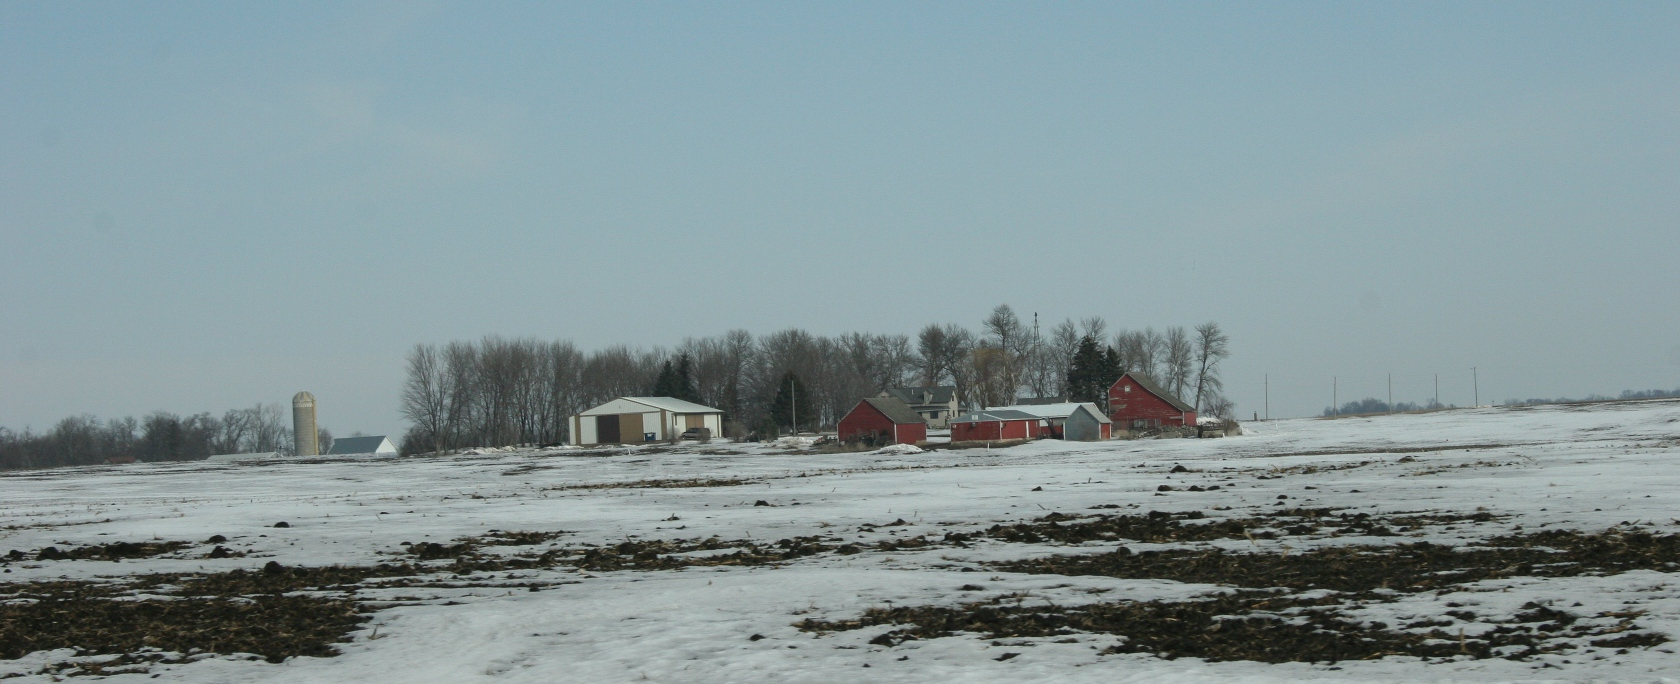 Highway 14 slices through agricultural land, as seen in this photo taken between Nicollet and Courtland.